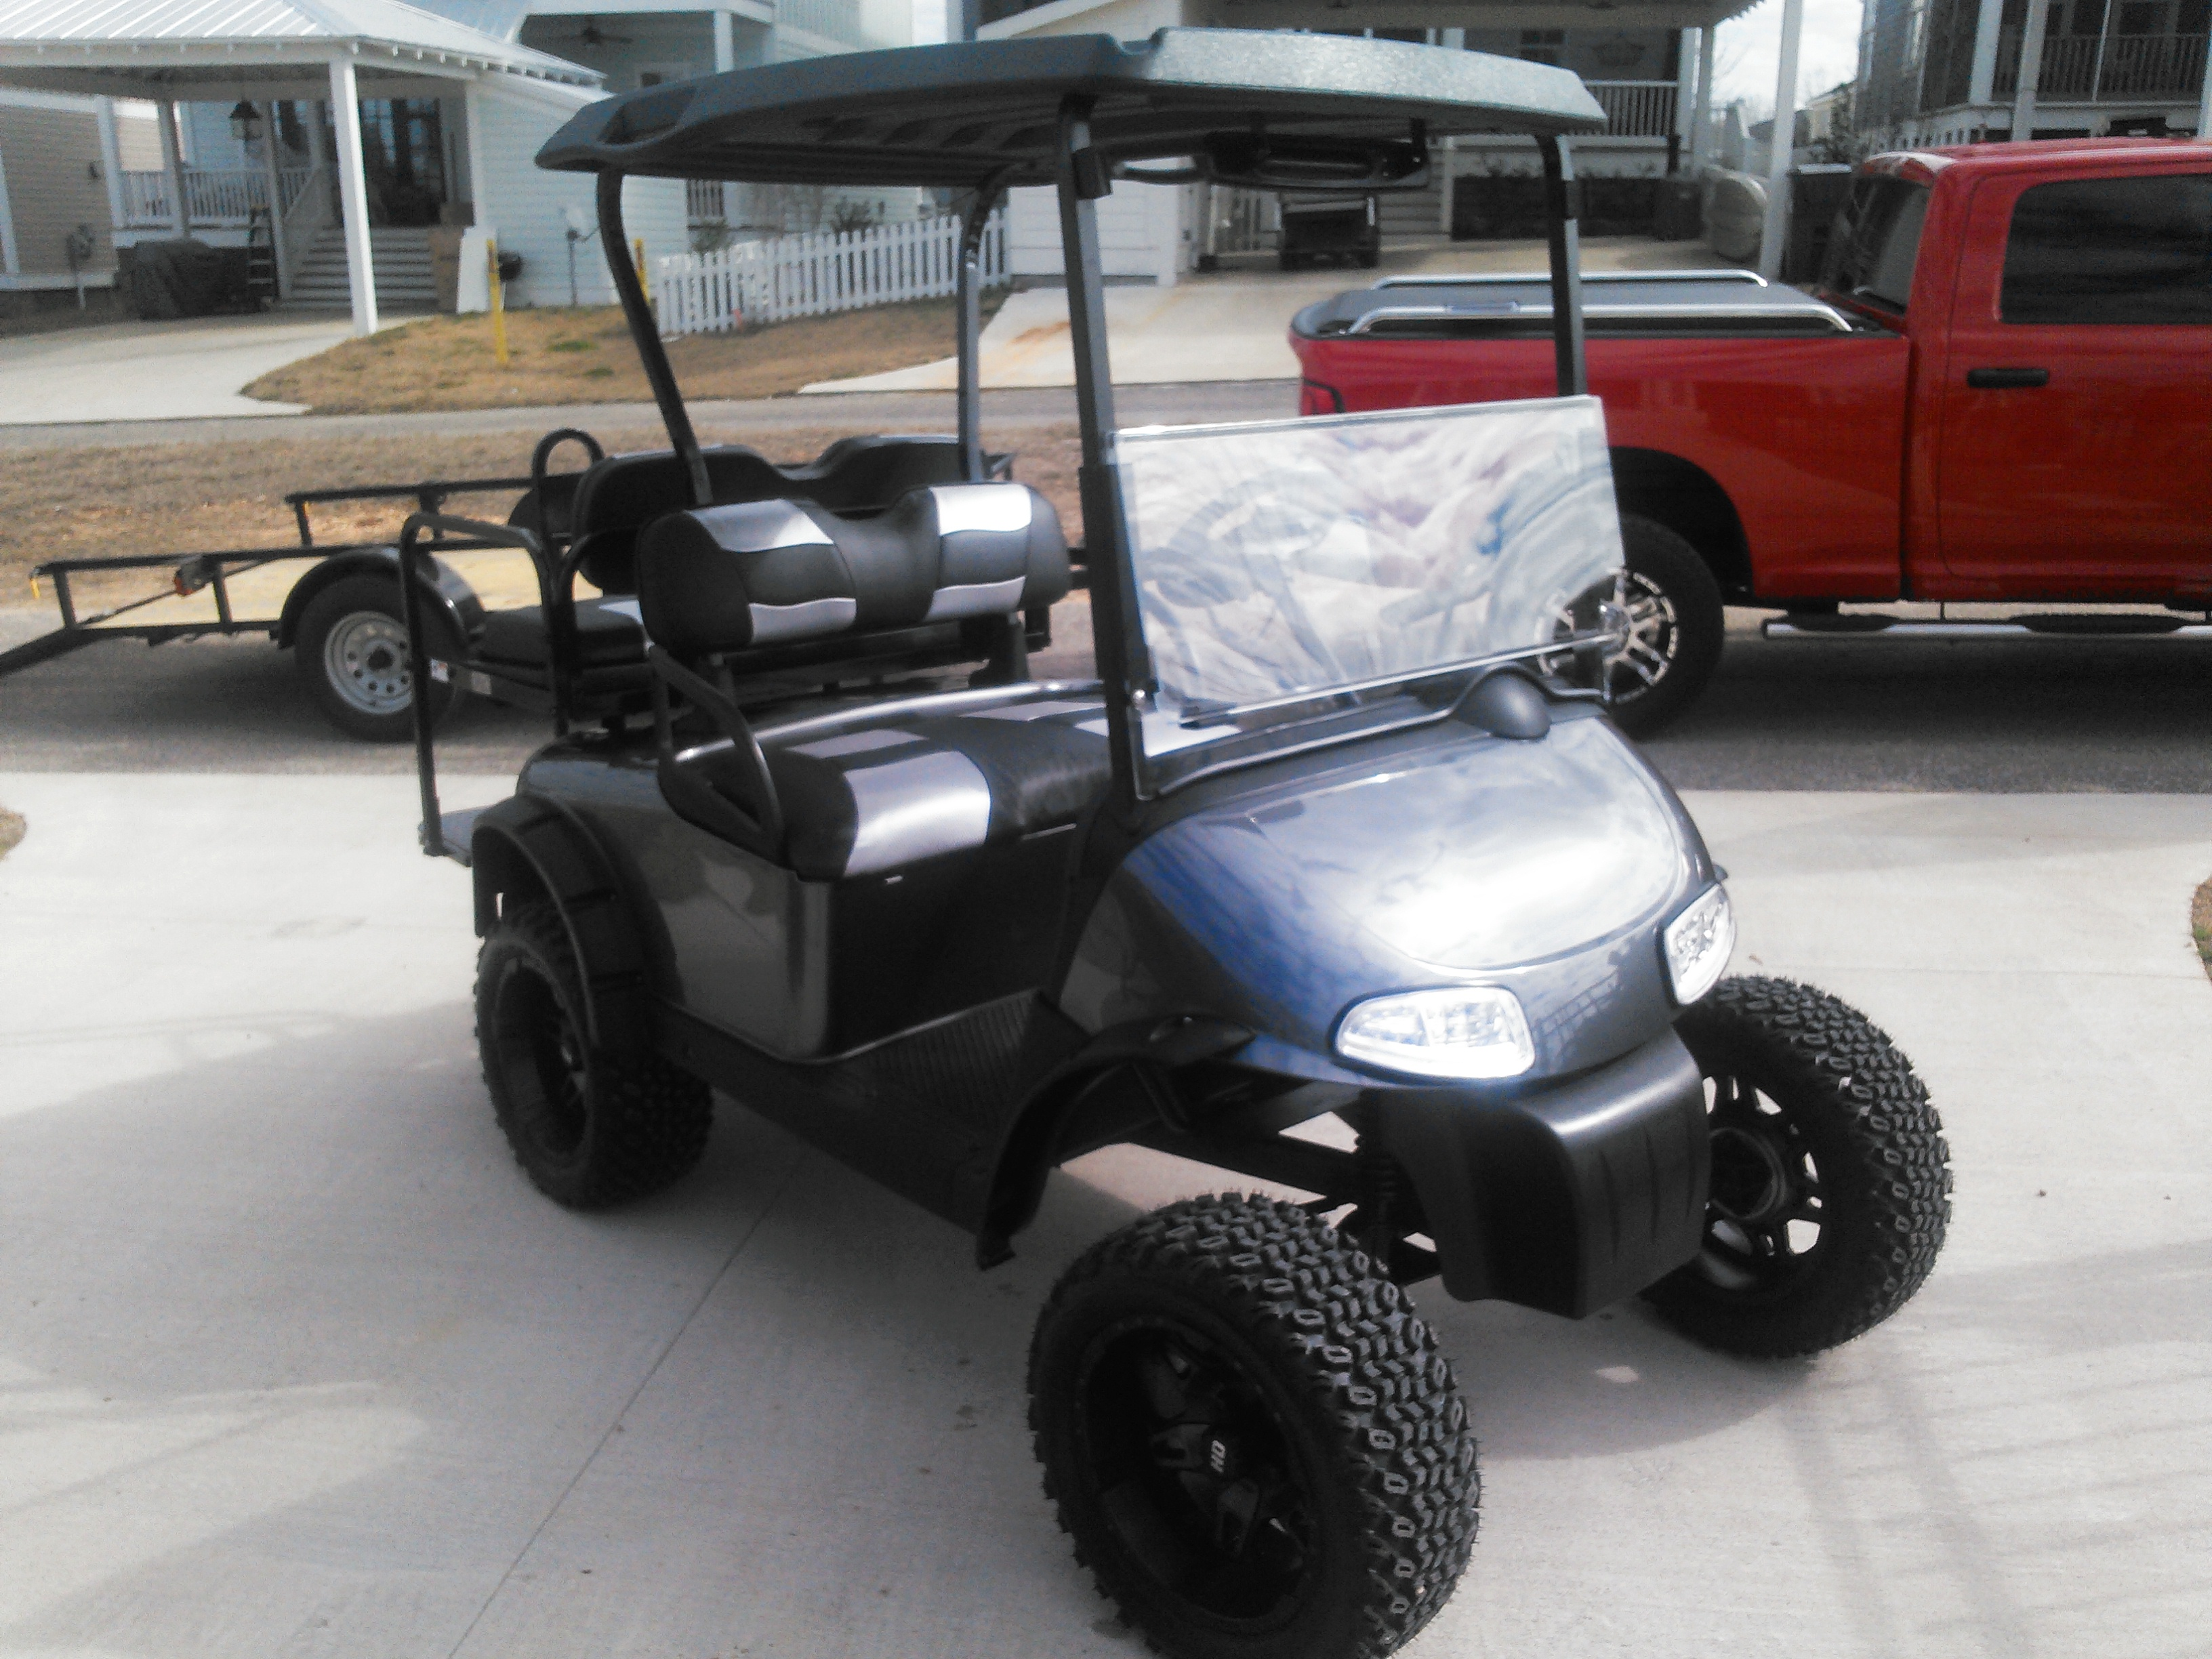 Lifted Gas Golf Cart for Sale Greenville, AL